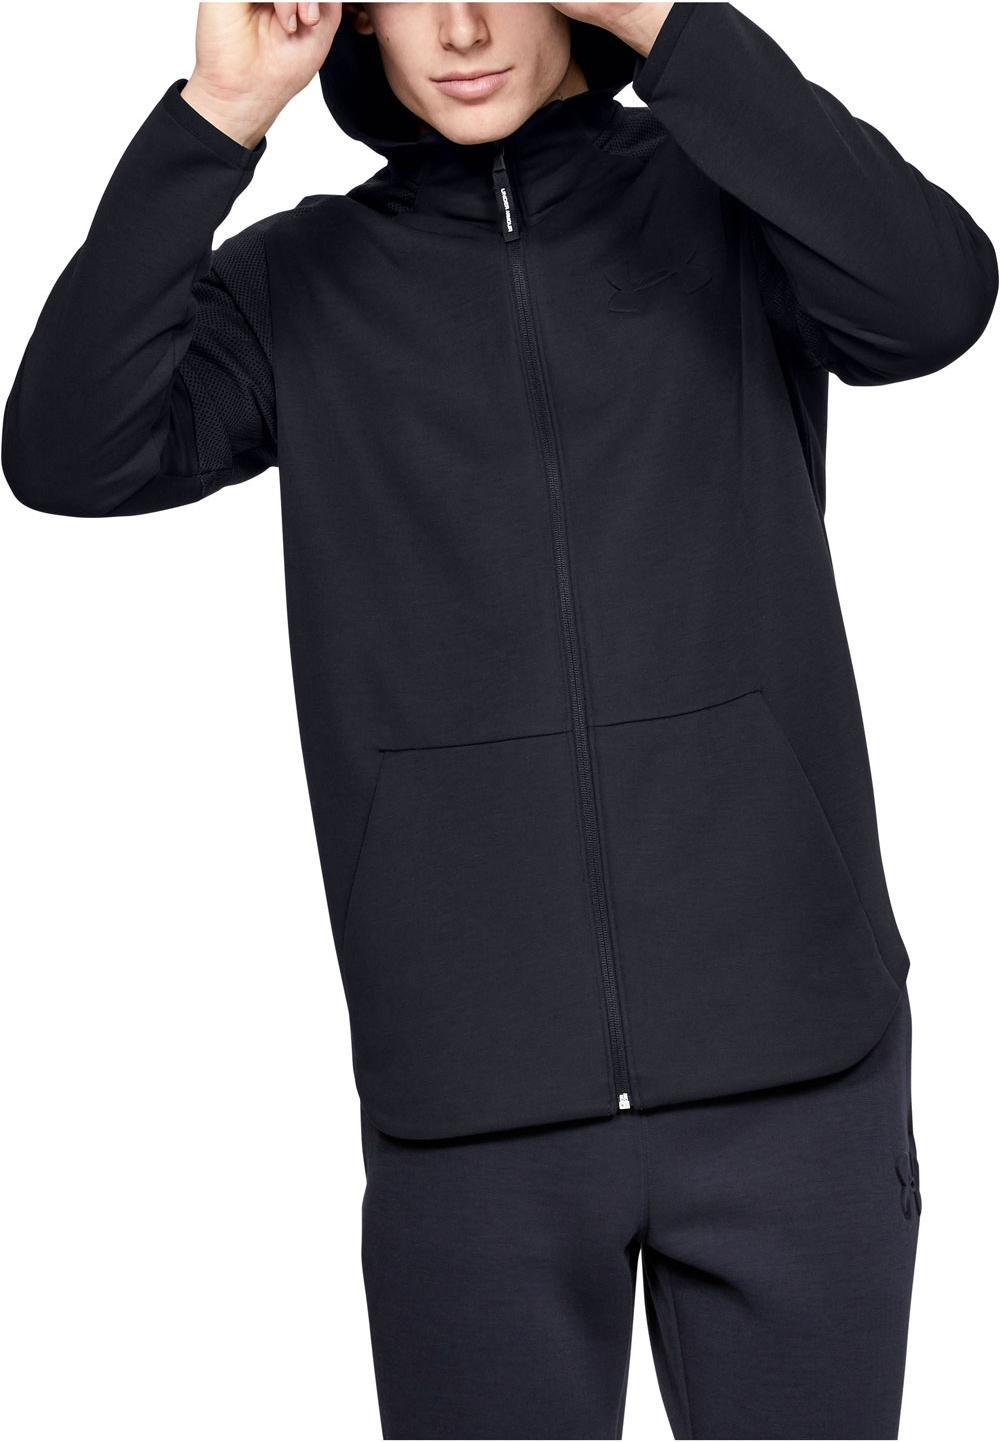 Invitación Respecto a Usual  Hooded sweatshirt Under Armour UNSTOPPABLE MOVE LIGHT FZ - Top4Fitness.com